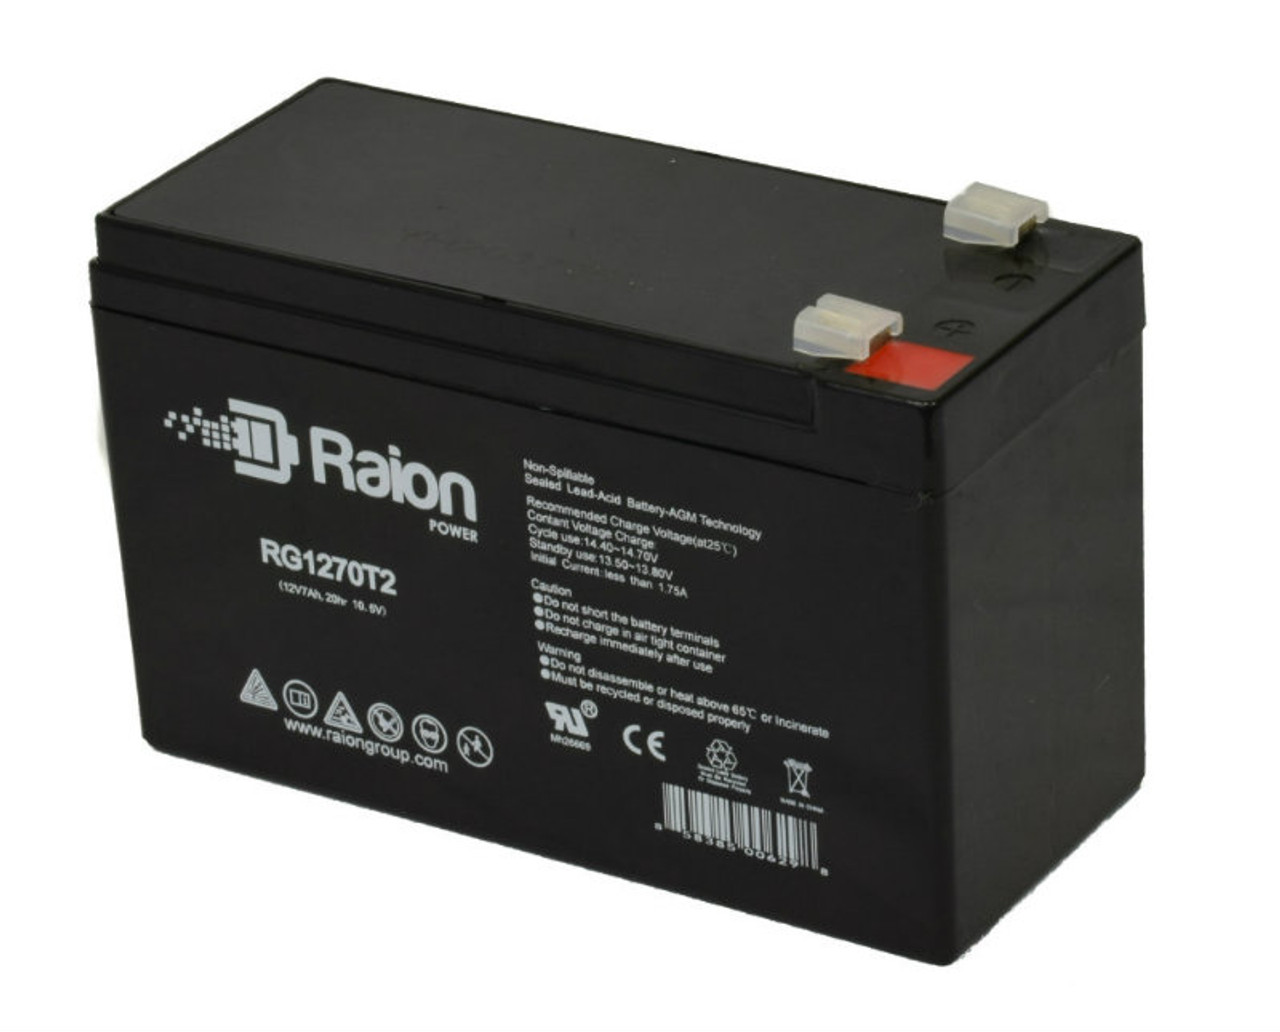 Raion Power RG1270T1 Replacement Battery for Panasonic LCR12V7.2